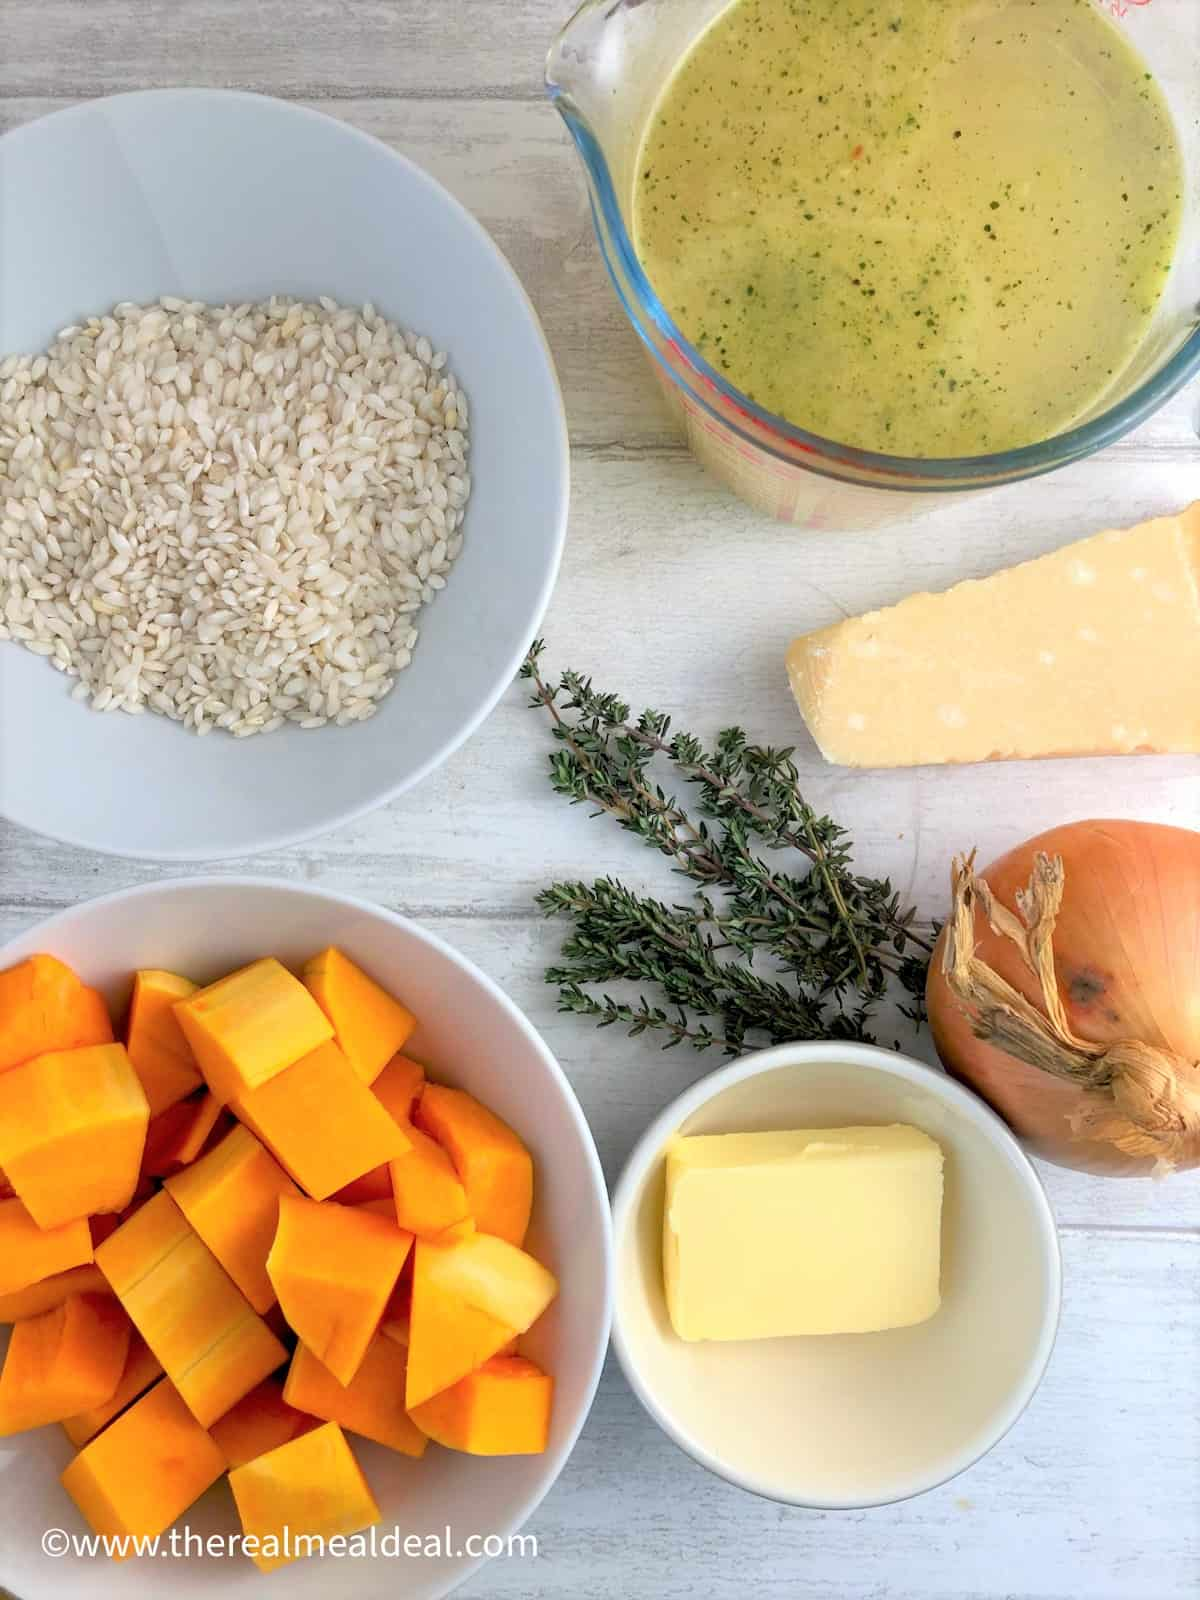 butternut squash risotto ingredients butternut squash arborio rice butter onion stock thyme parmesan cheese